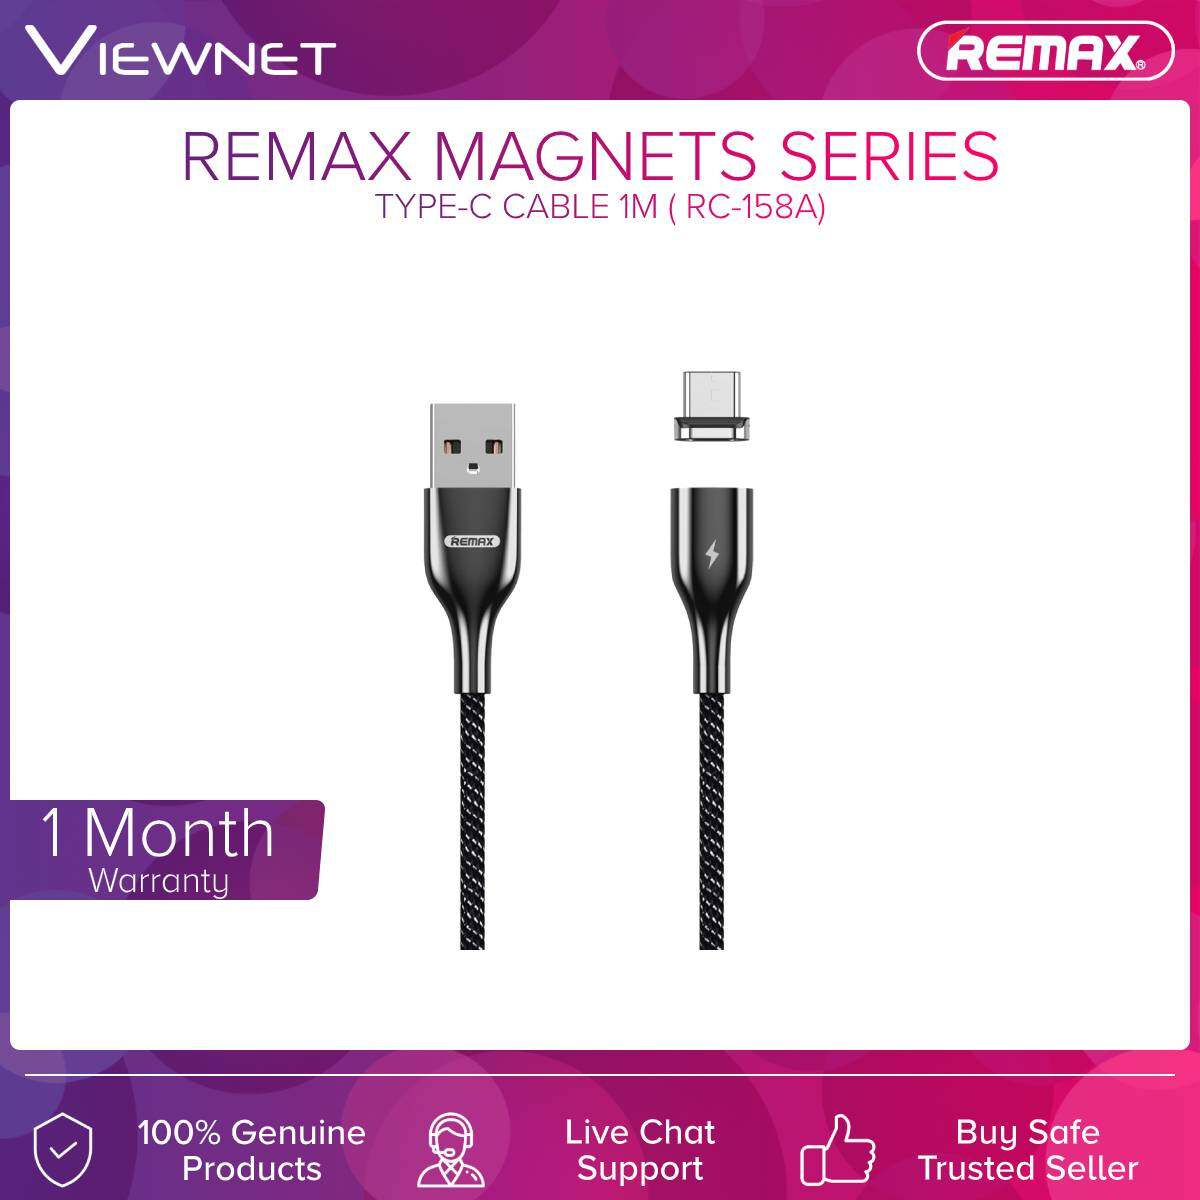 Remax (RC-158A) Type-c Cable Magnet Series